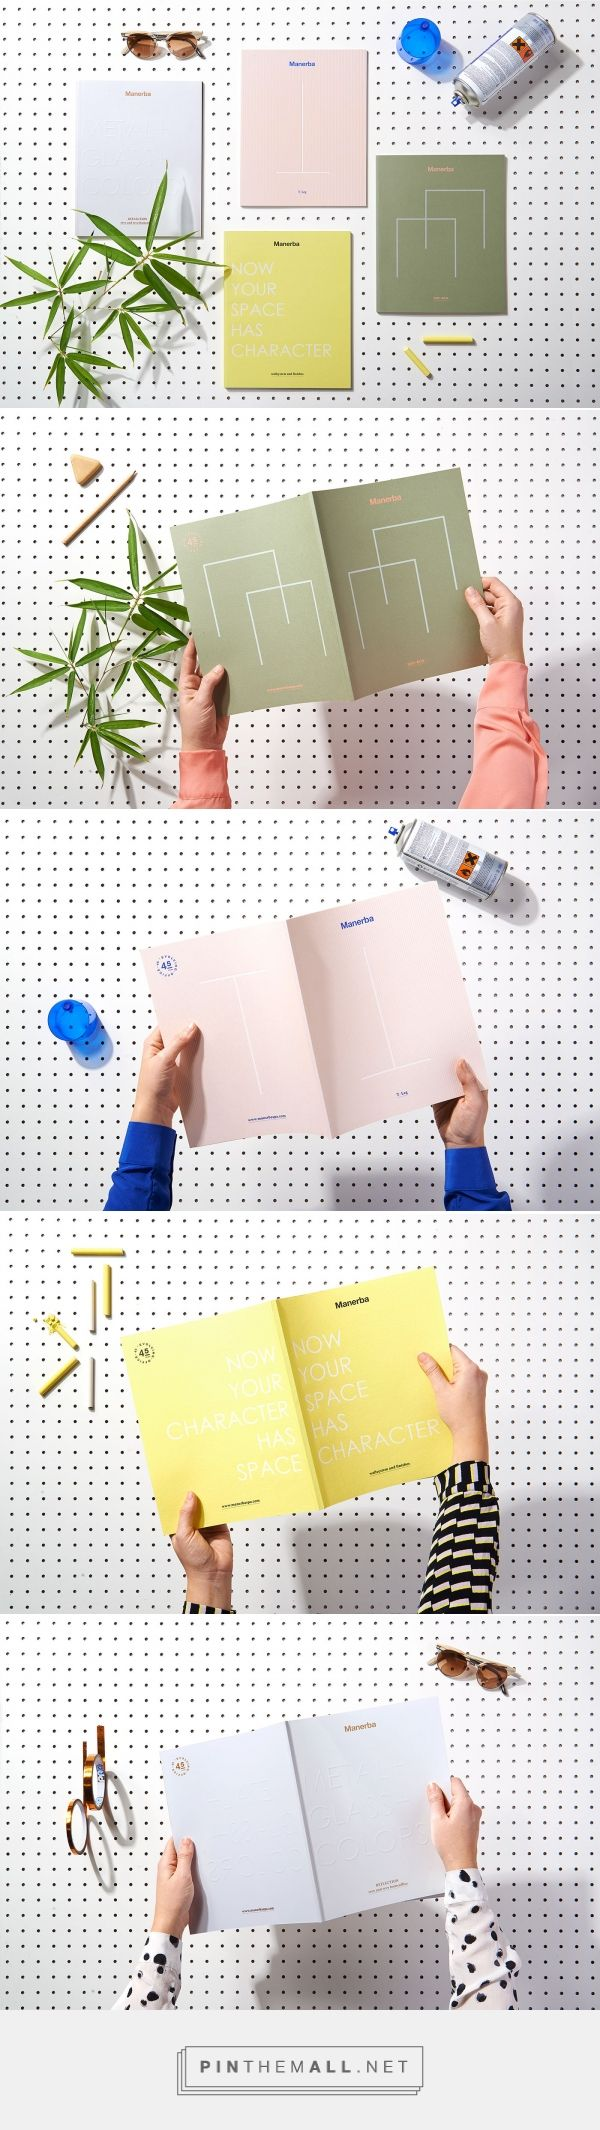 Manerba – Office system catalogues on Behance https://www.behance.net/gallery/31820145/Manerba-Office-system-catalogues... - a grouped images picture - Pin Them All